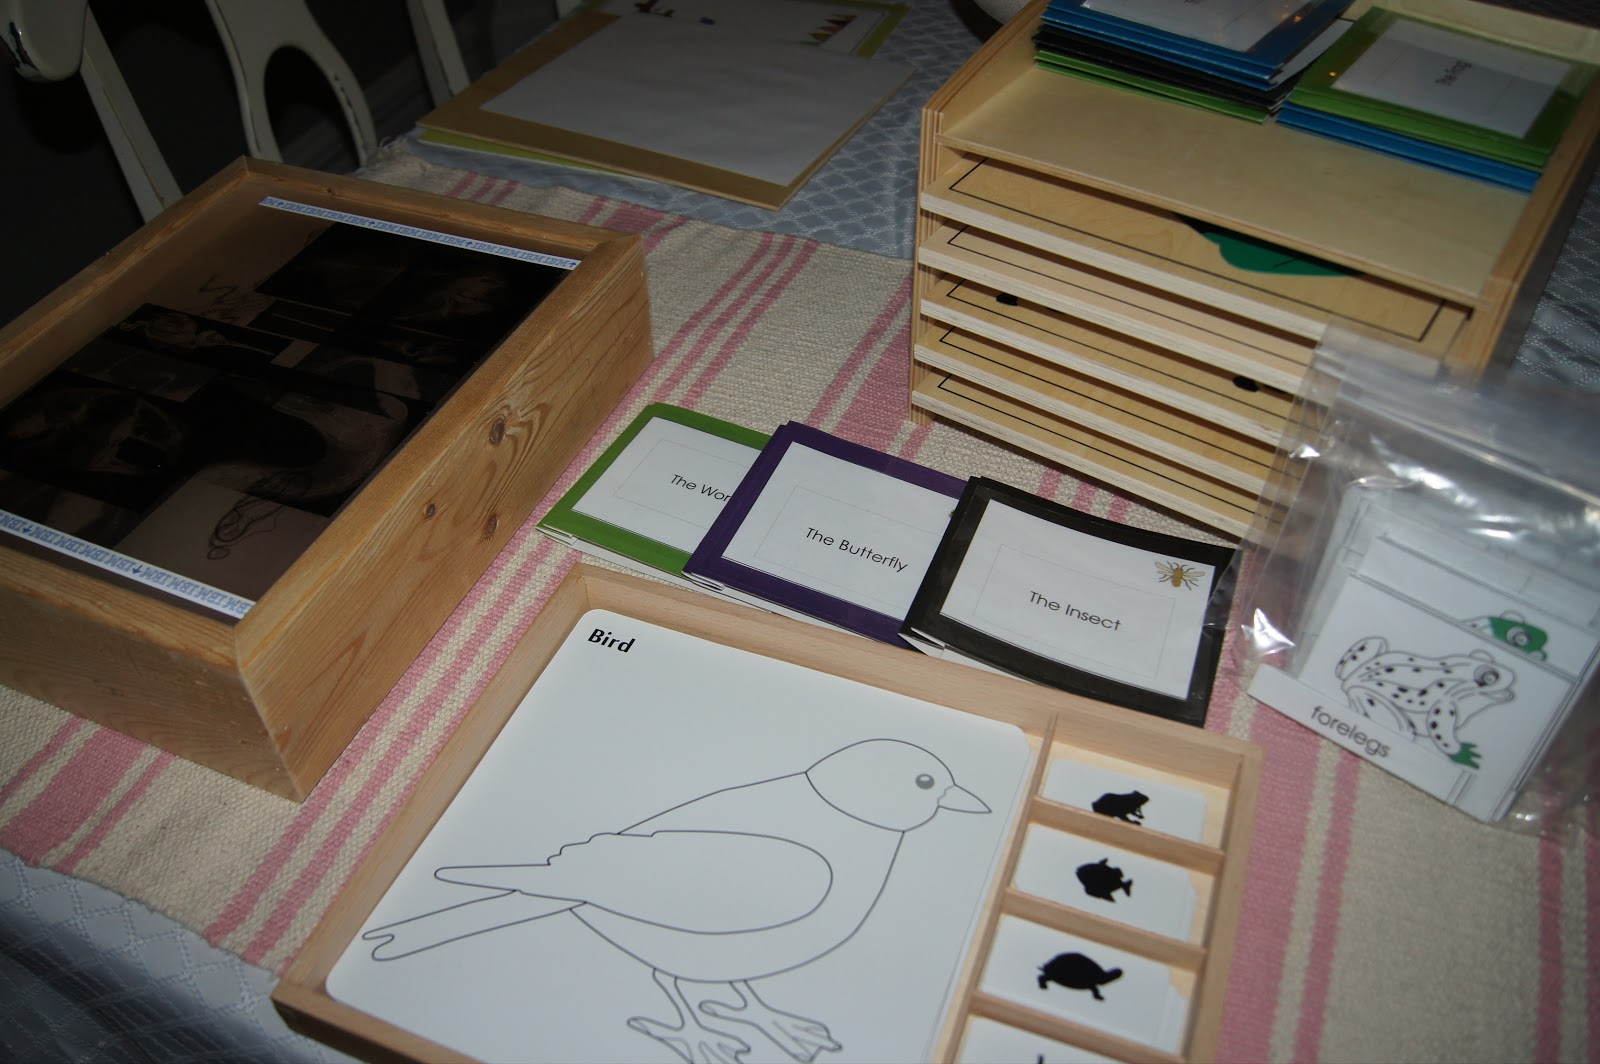 zoology montessori These lesson plans are derived from the founder of maitri's ami montessori albums if you are not a trained montessori teacher/guide, get trained visit ami usa's website for details.